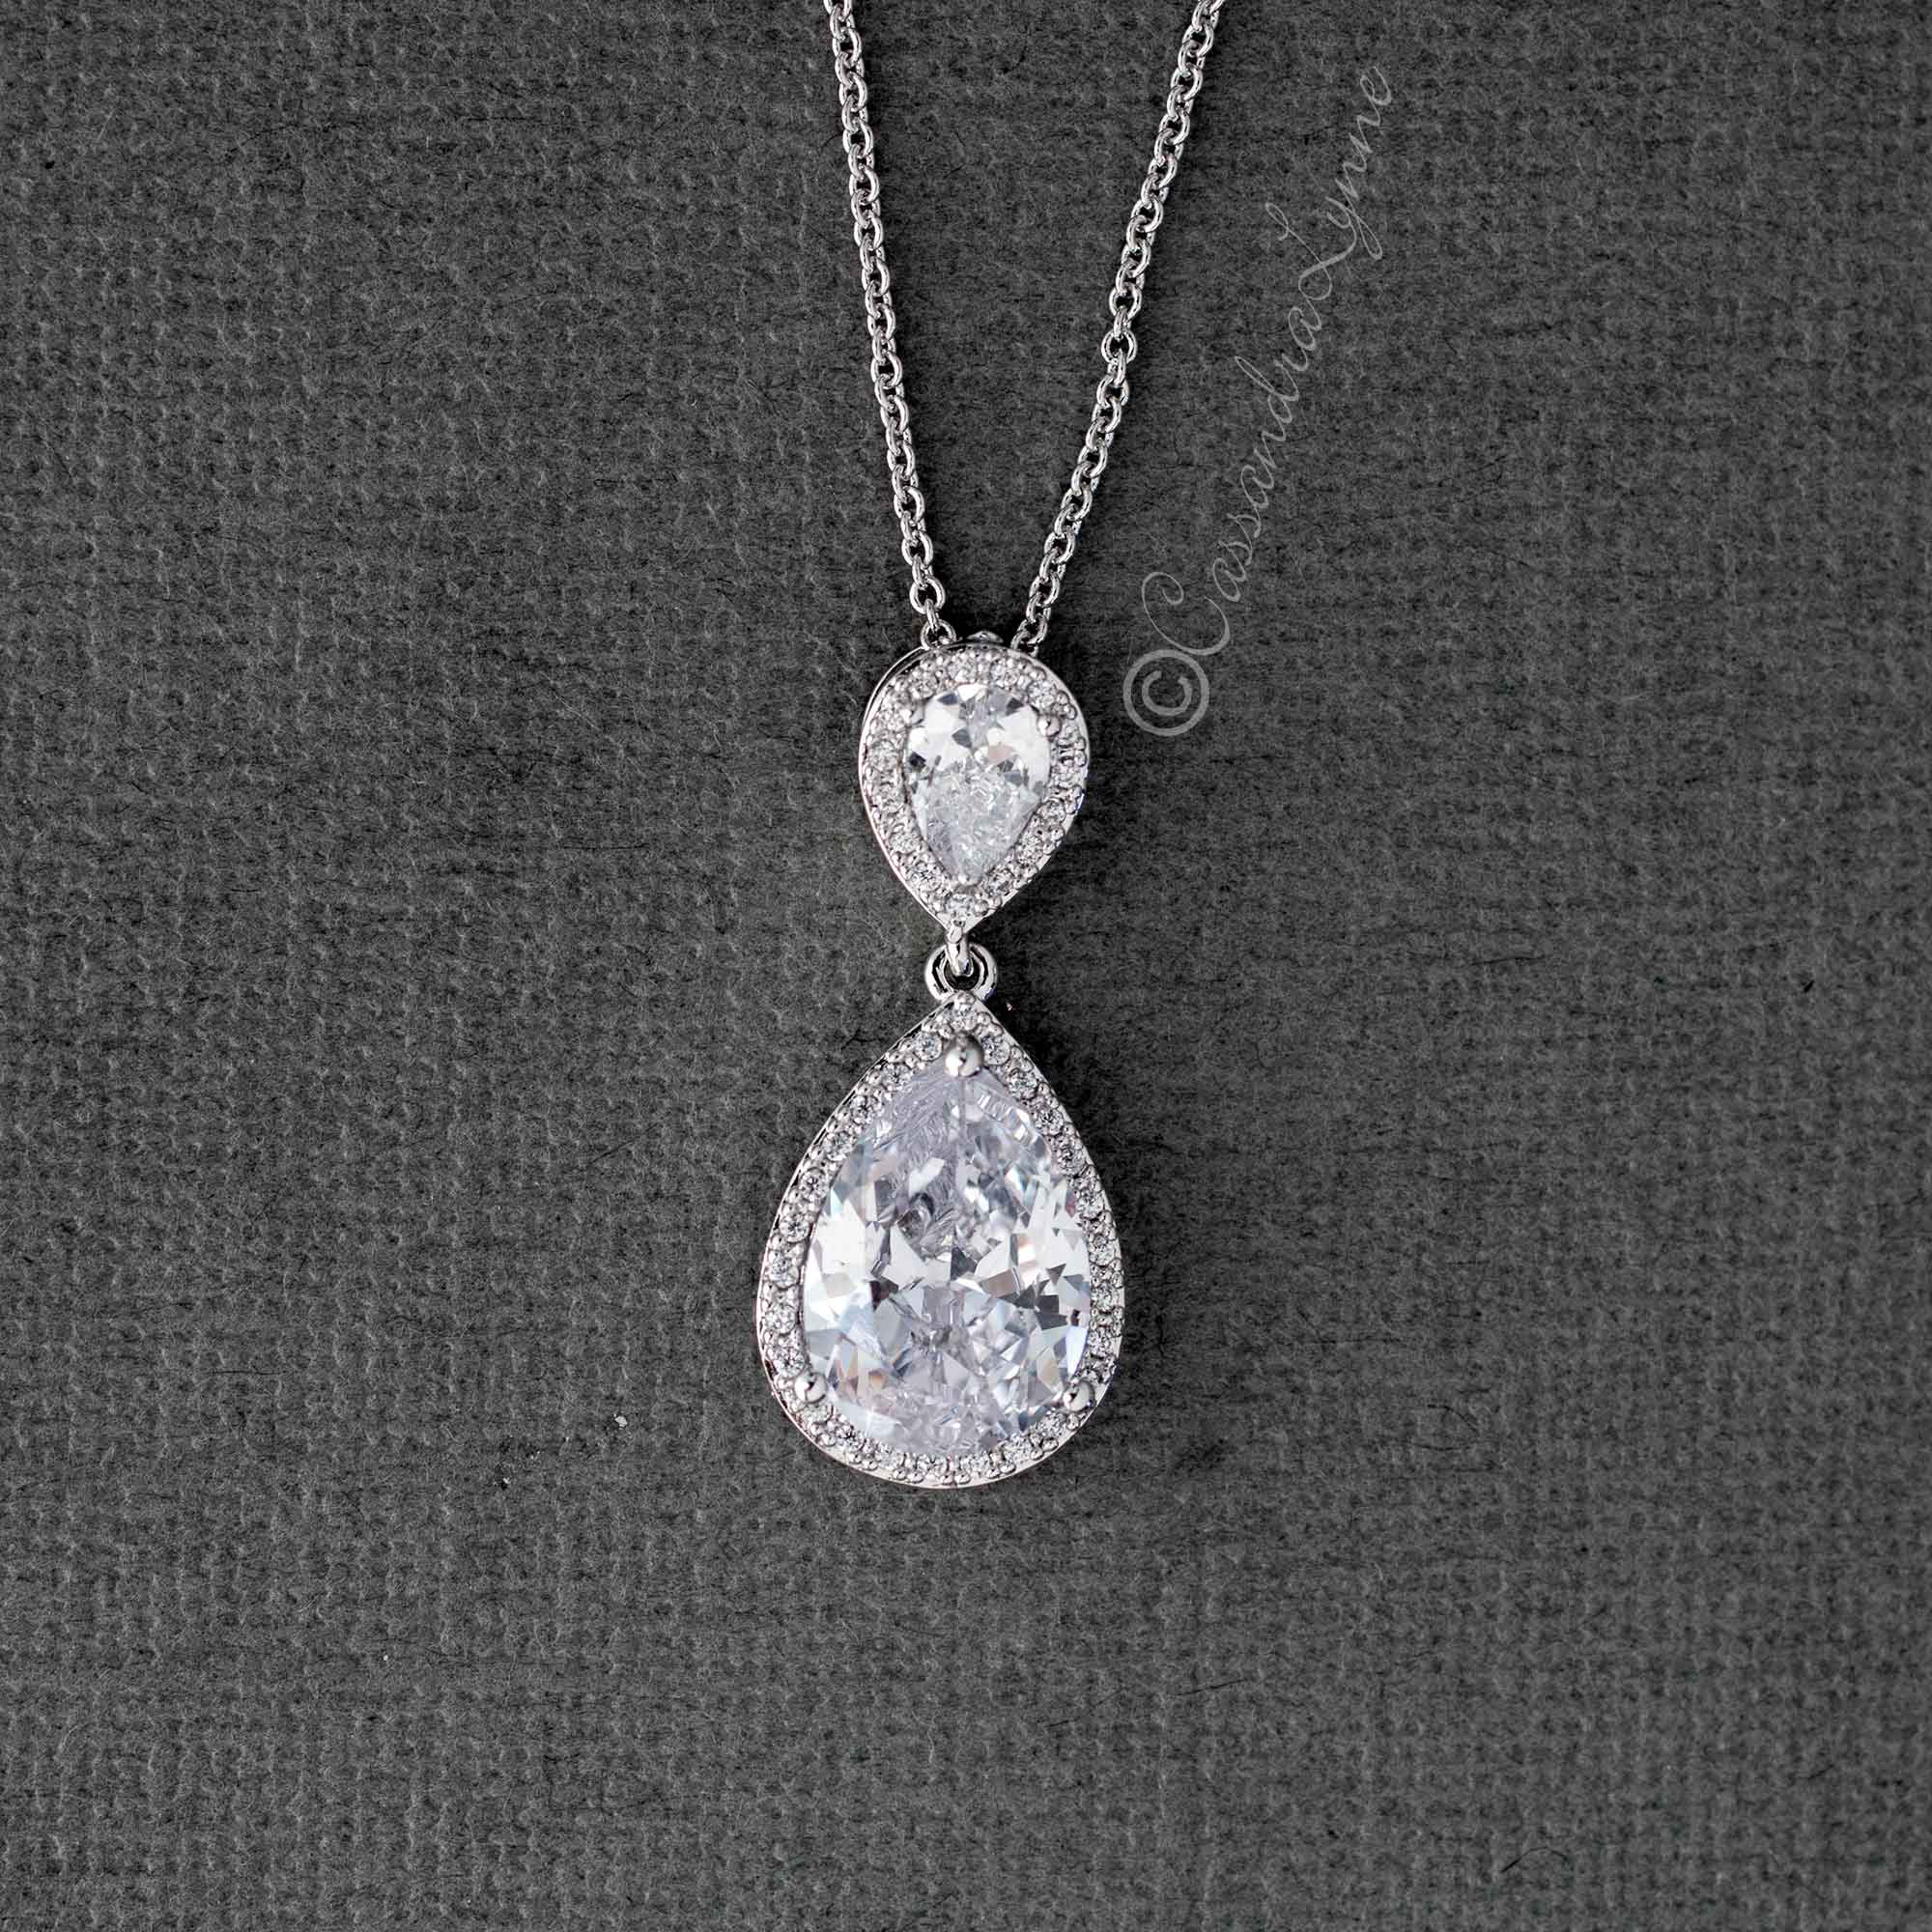 CZ Water Drop Pendant Necklace